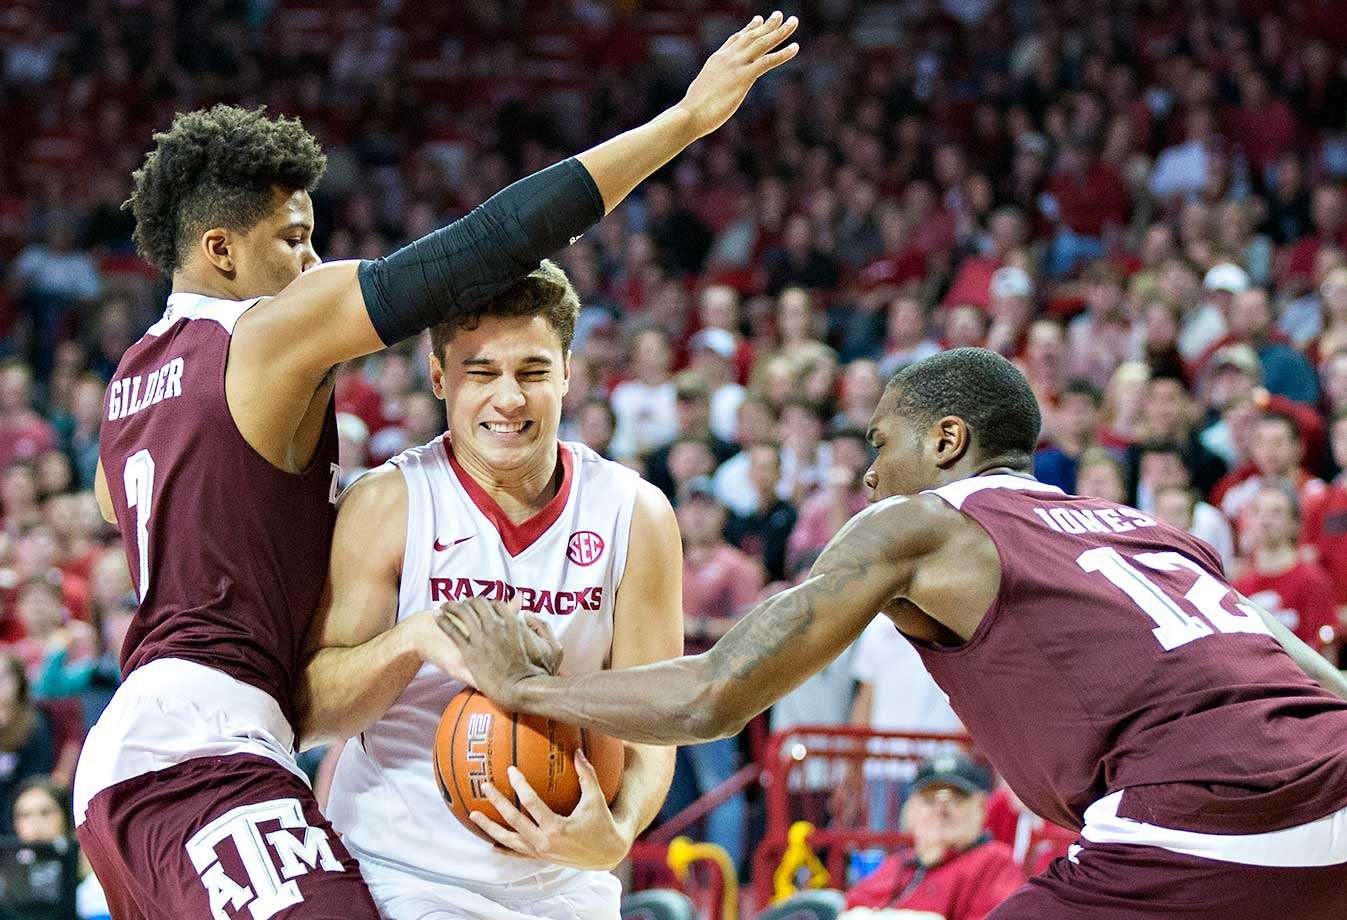 Dusty Hannahs of the Arkansas Razorbacks drives to the basket and is fouled by Jalen Jones of the Texas A&M Aggies at Bud Walton Arena in Fayetteville.  The Razorbacks won 74-71.